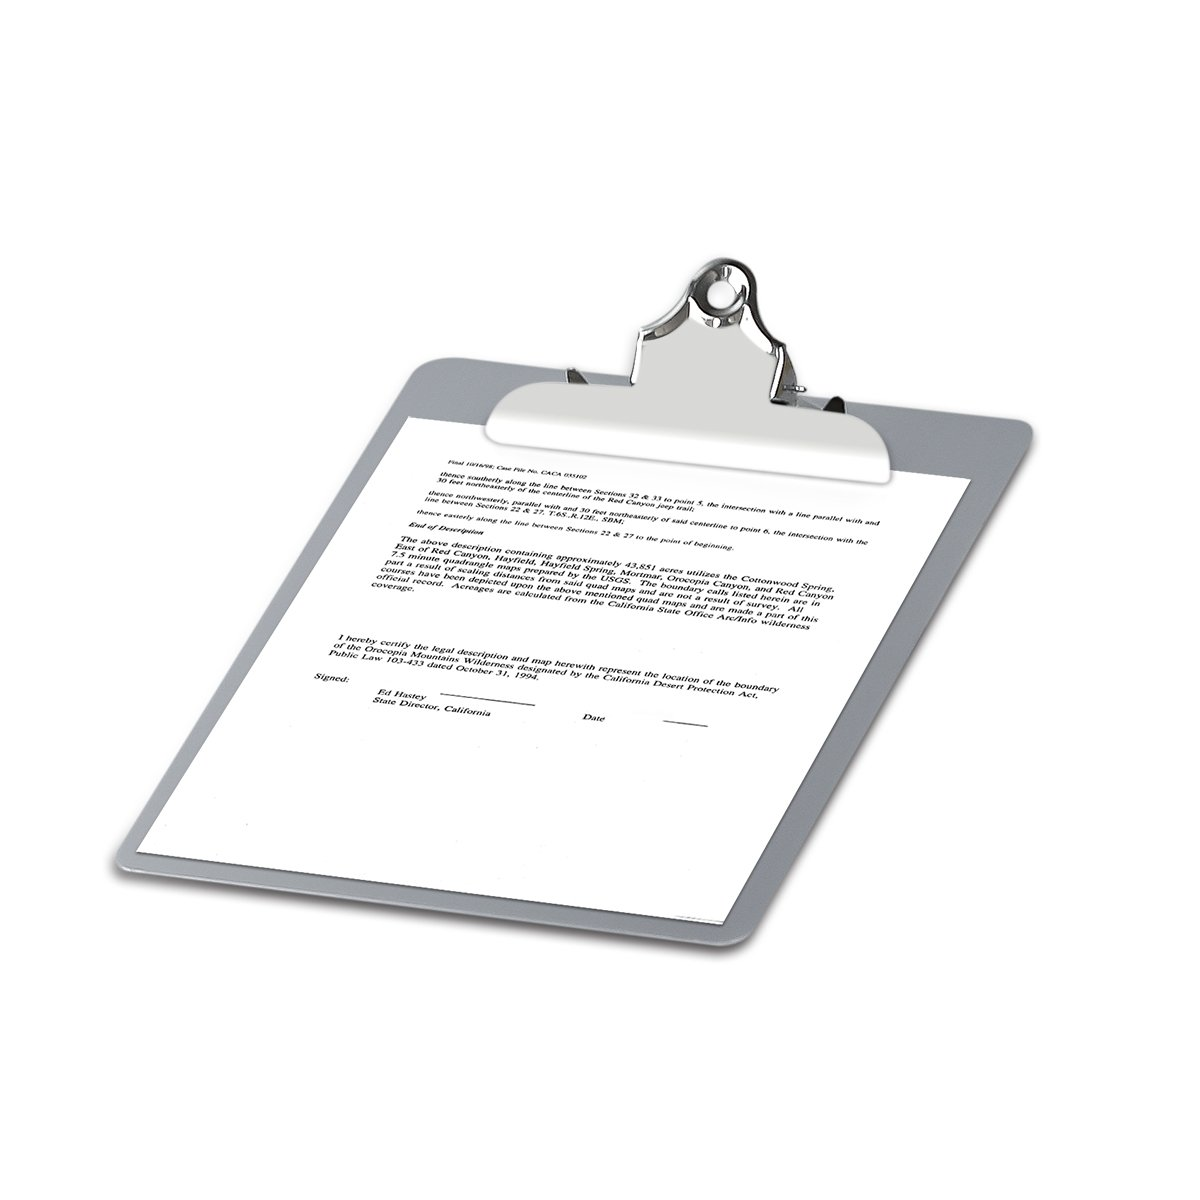 Metal Clipboard Paper Holder Letter Size-Highest Quality File A4 Aluminum Holder for Office Business Steel clipboard by SUNNYCLIP (Image #4)